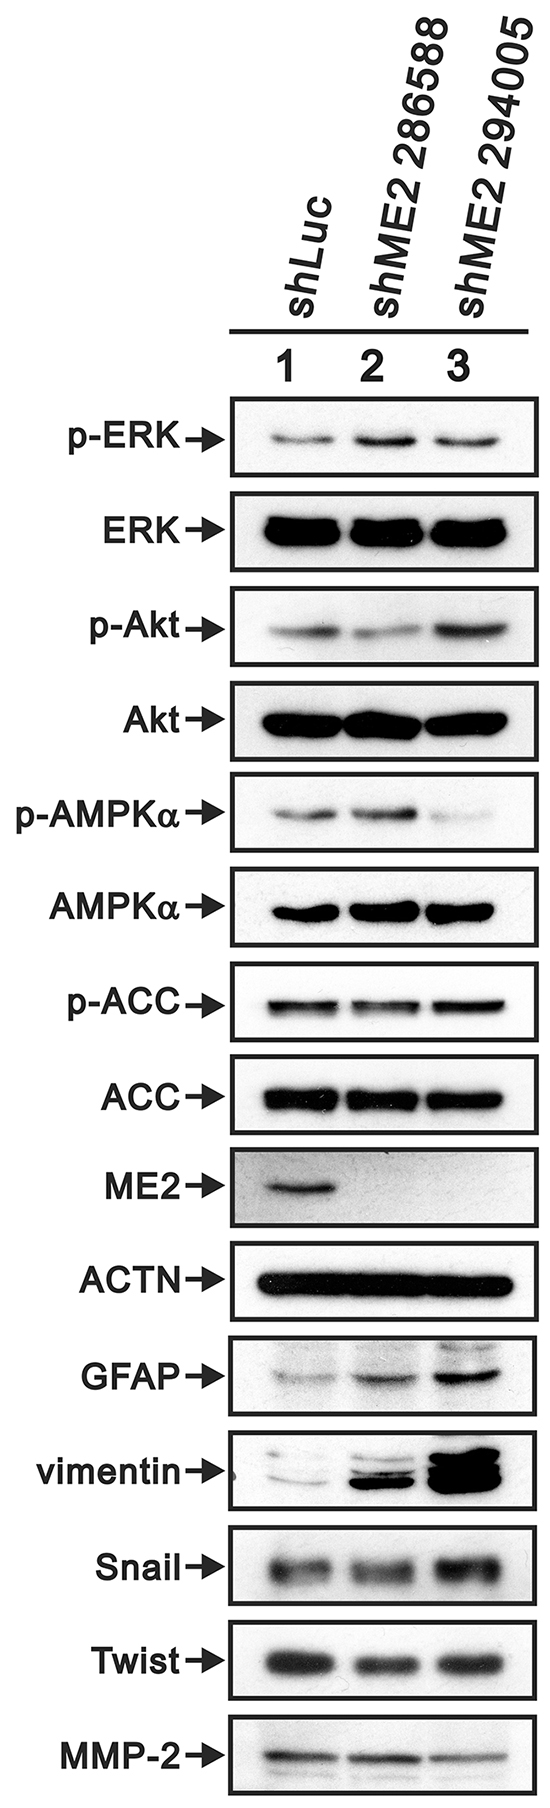 The effects of ME2 on the AMPK signaling and EMT pathways in GBM8401 cells.